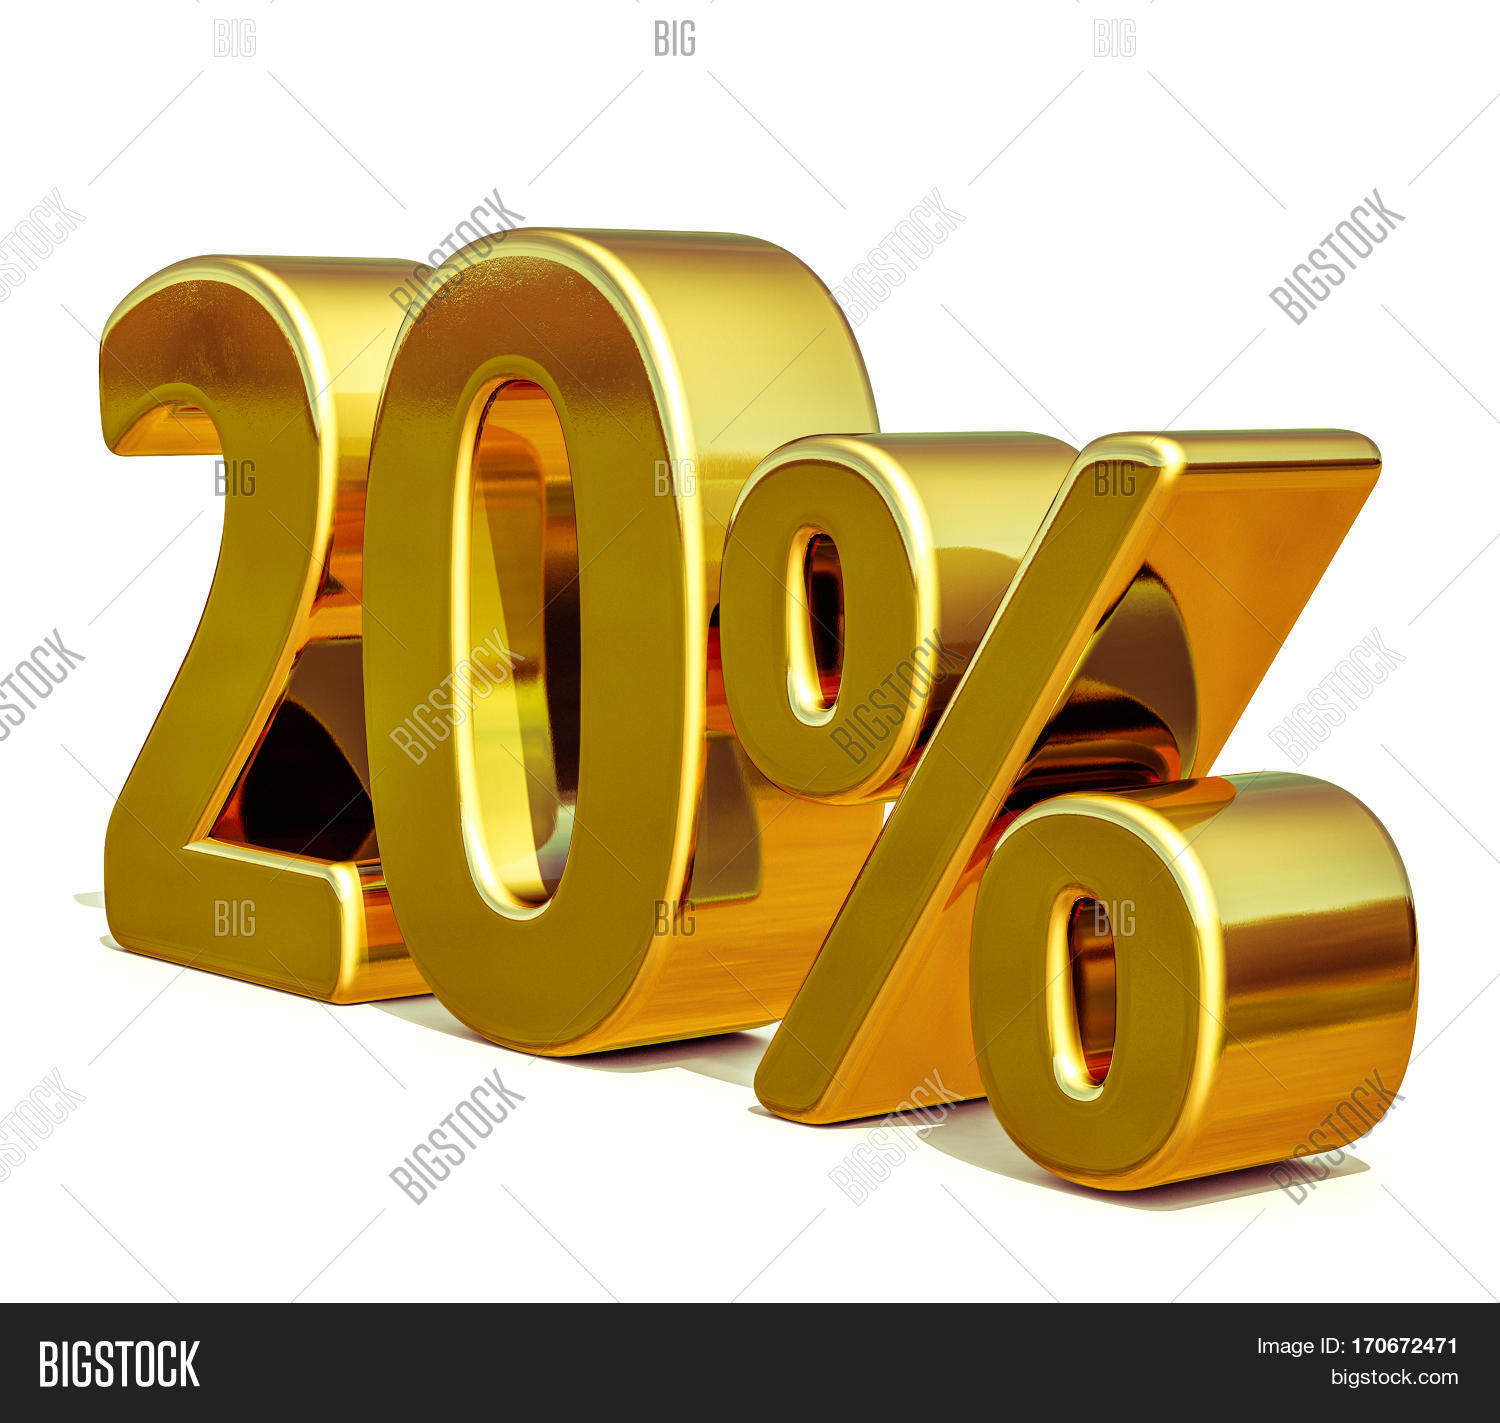 gold sale 20 gold percent off image photo bigstock. Black Bedroom Furniture Sets. Home Design Ideas